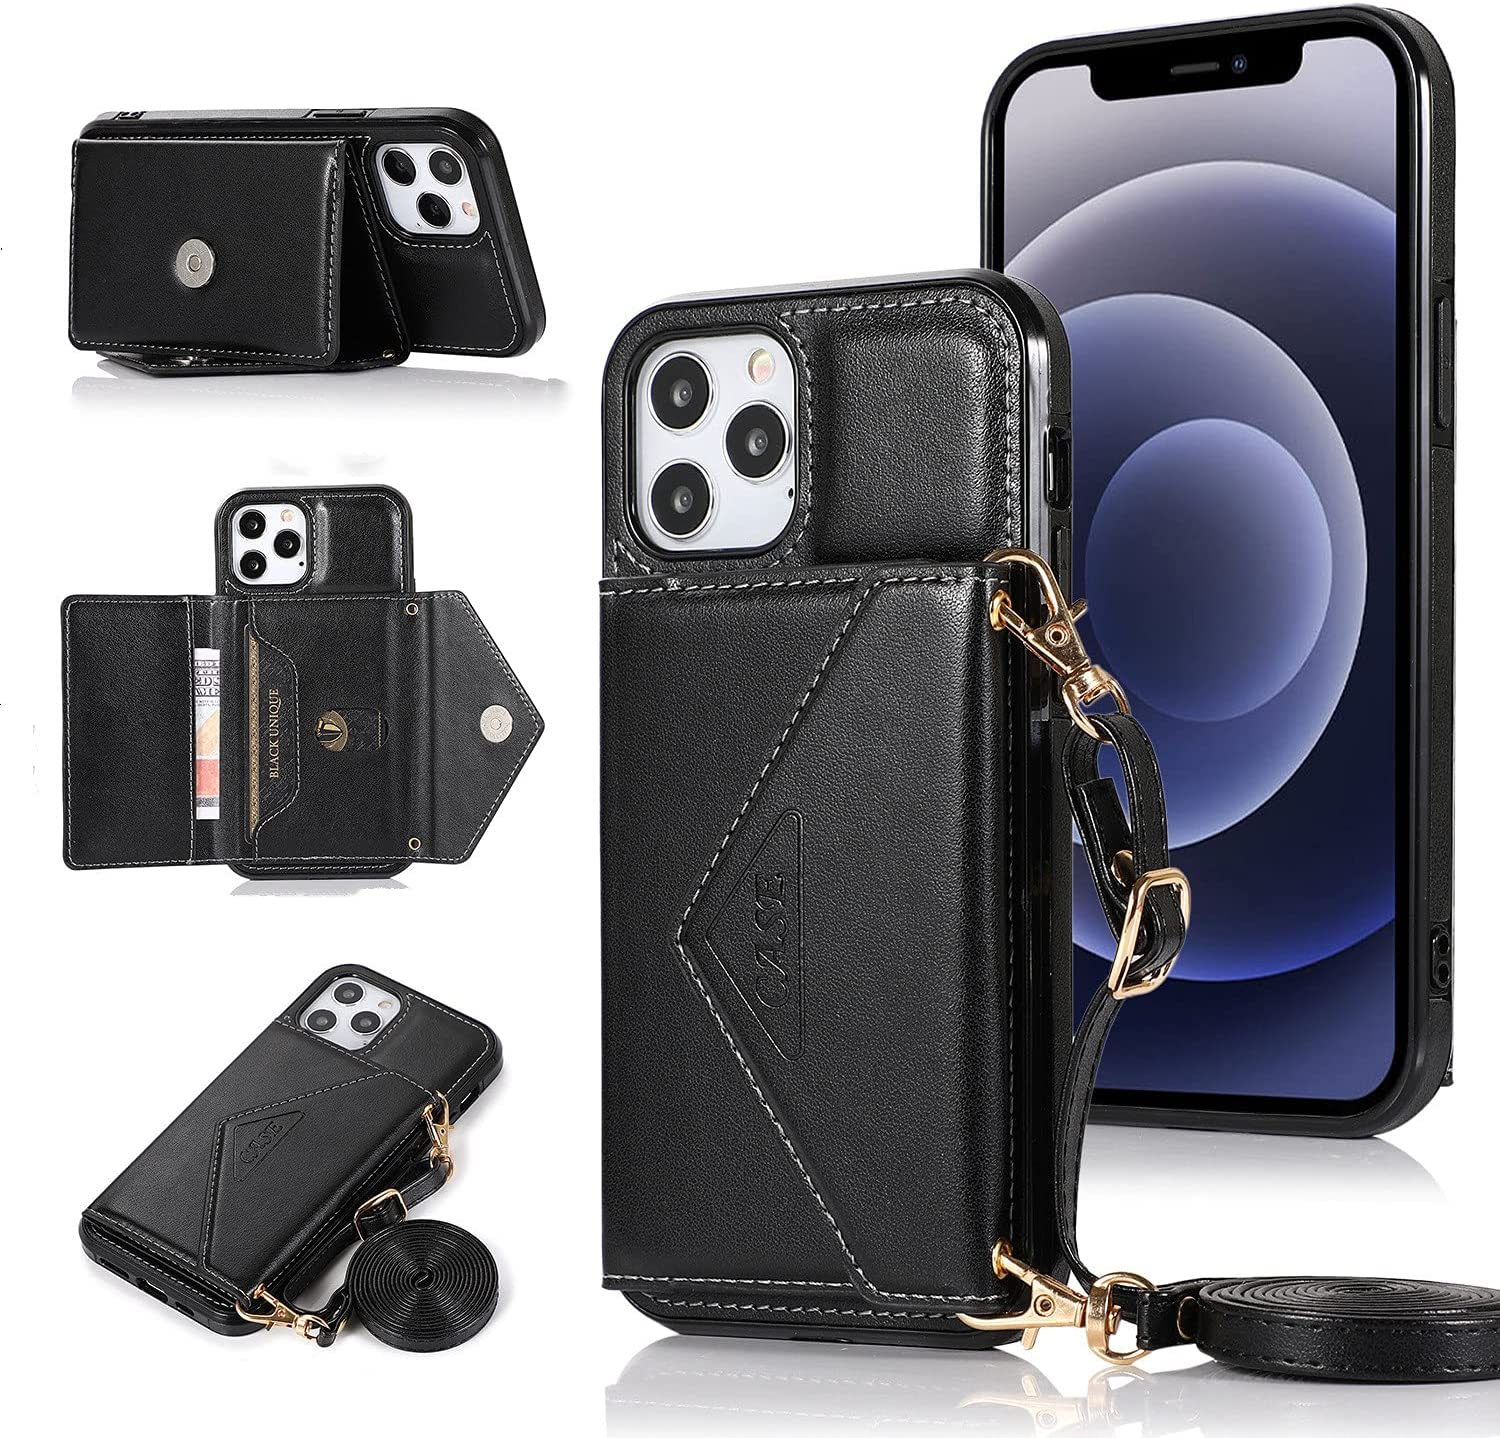 ISYSUII Crossbody Case for Samsung Galaxy S10 Wallet Case with Card Holder Kickstand Detachable Lanyard Strap Leather Shockproof Protective Flip Cover Magnetic Handbag Cover,Black